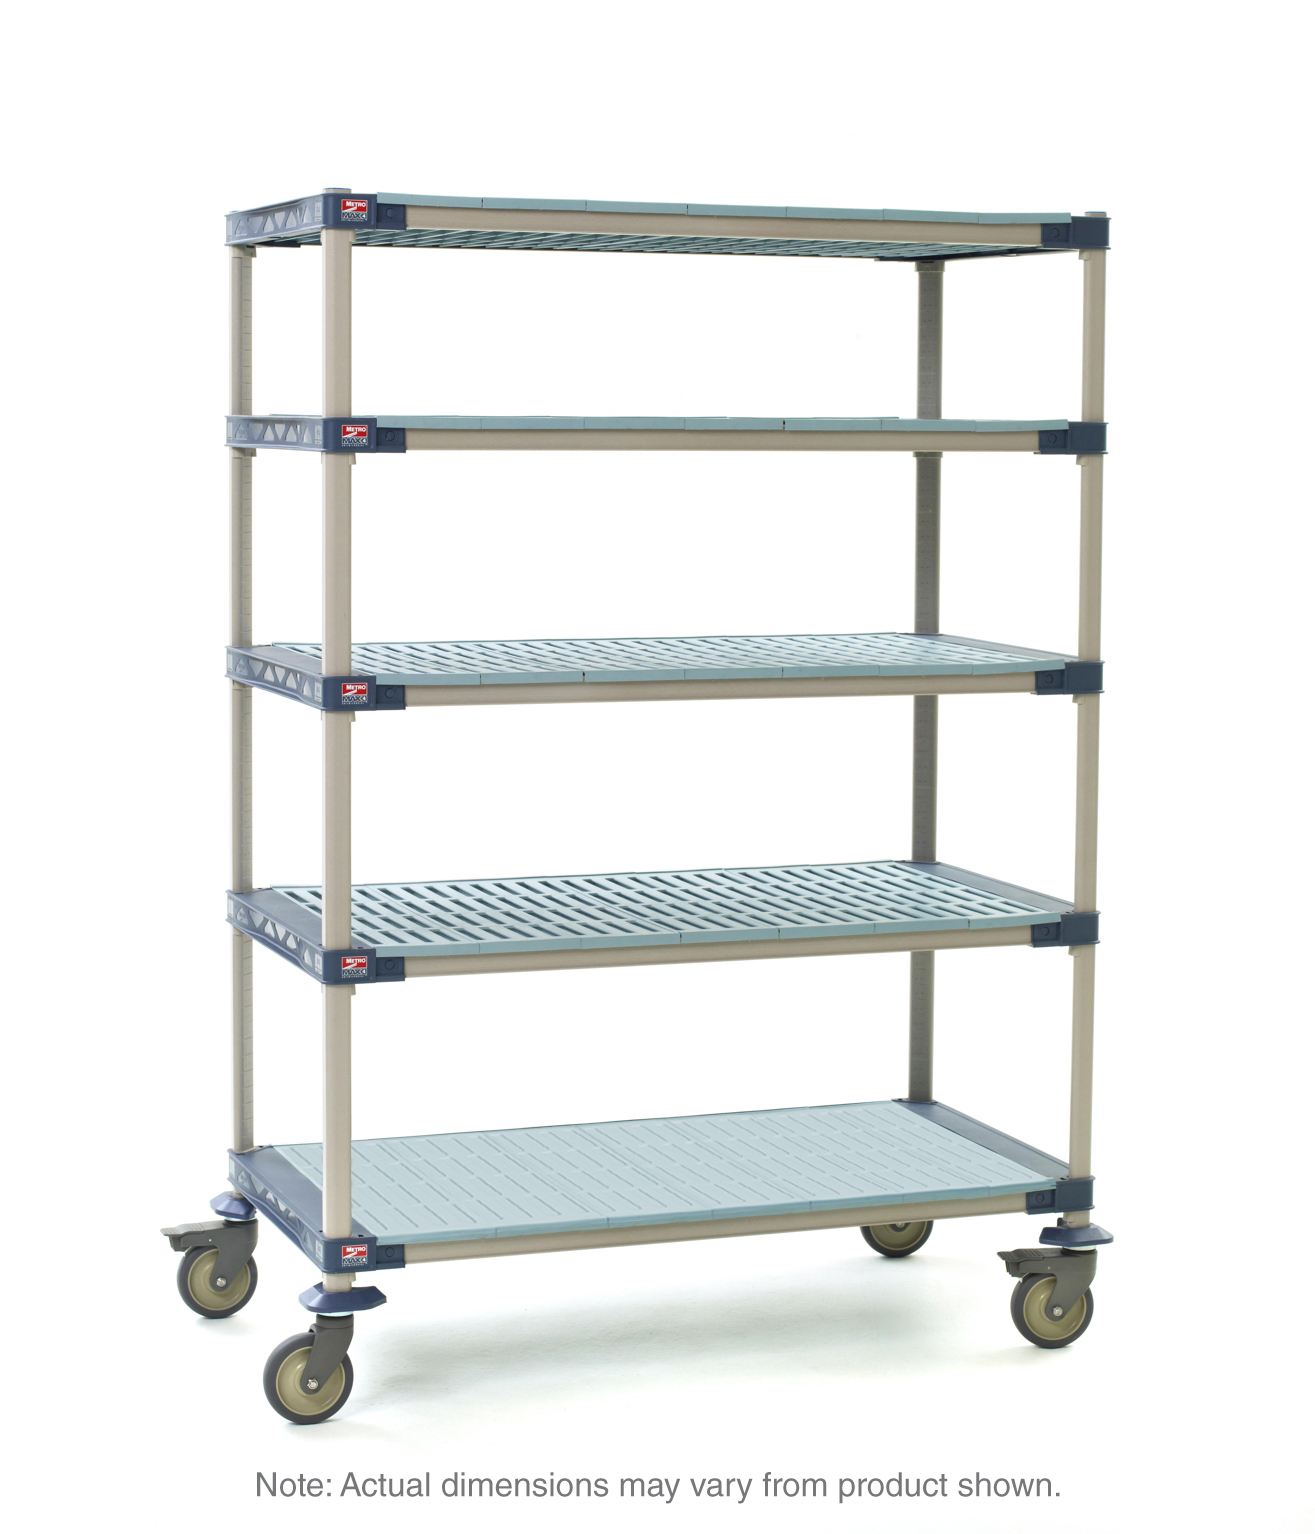 MetroMax 4 Mobile Pre-Configured Carts